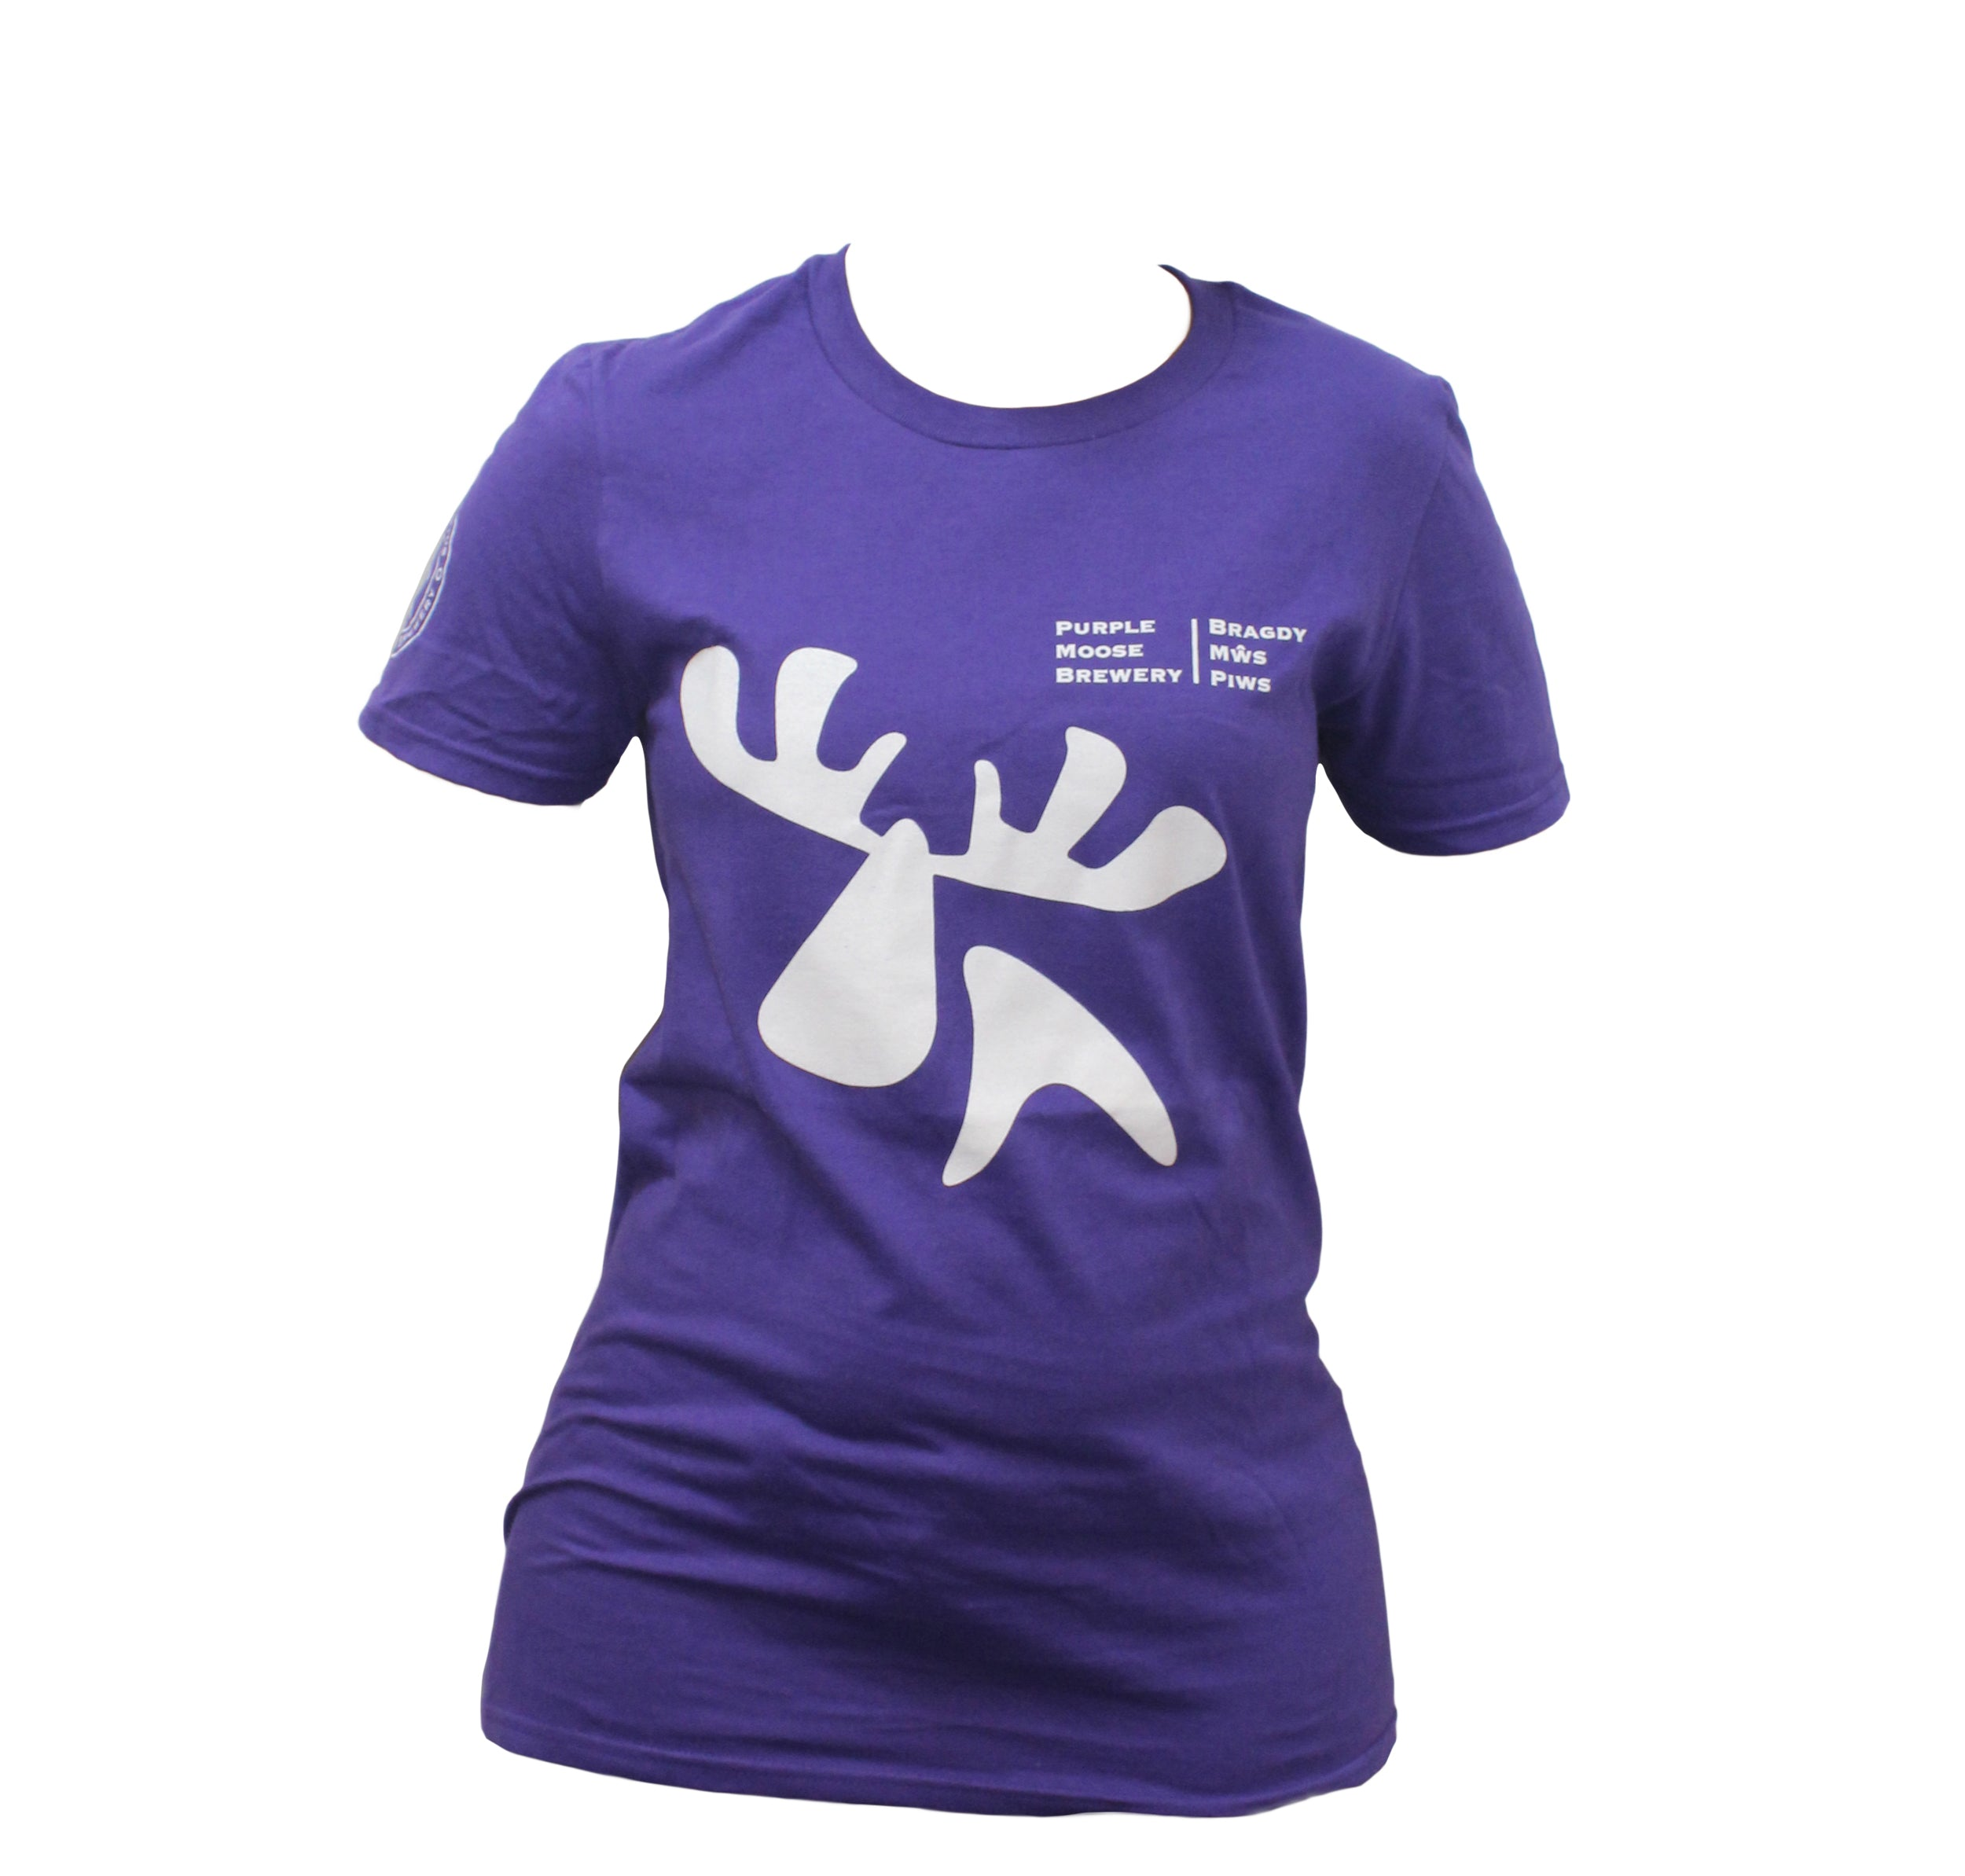 Purple t-shirt white logo